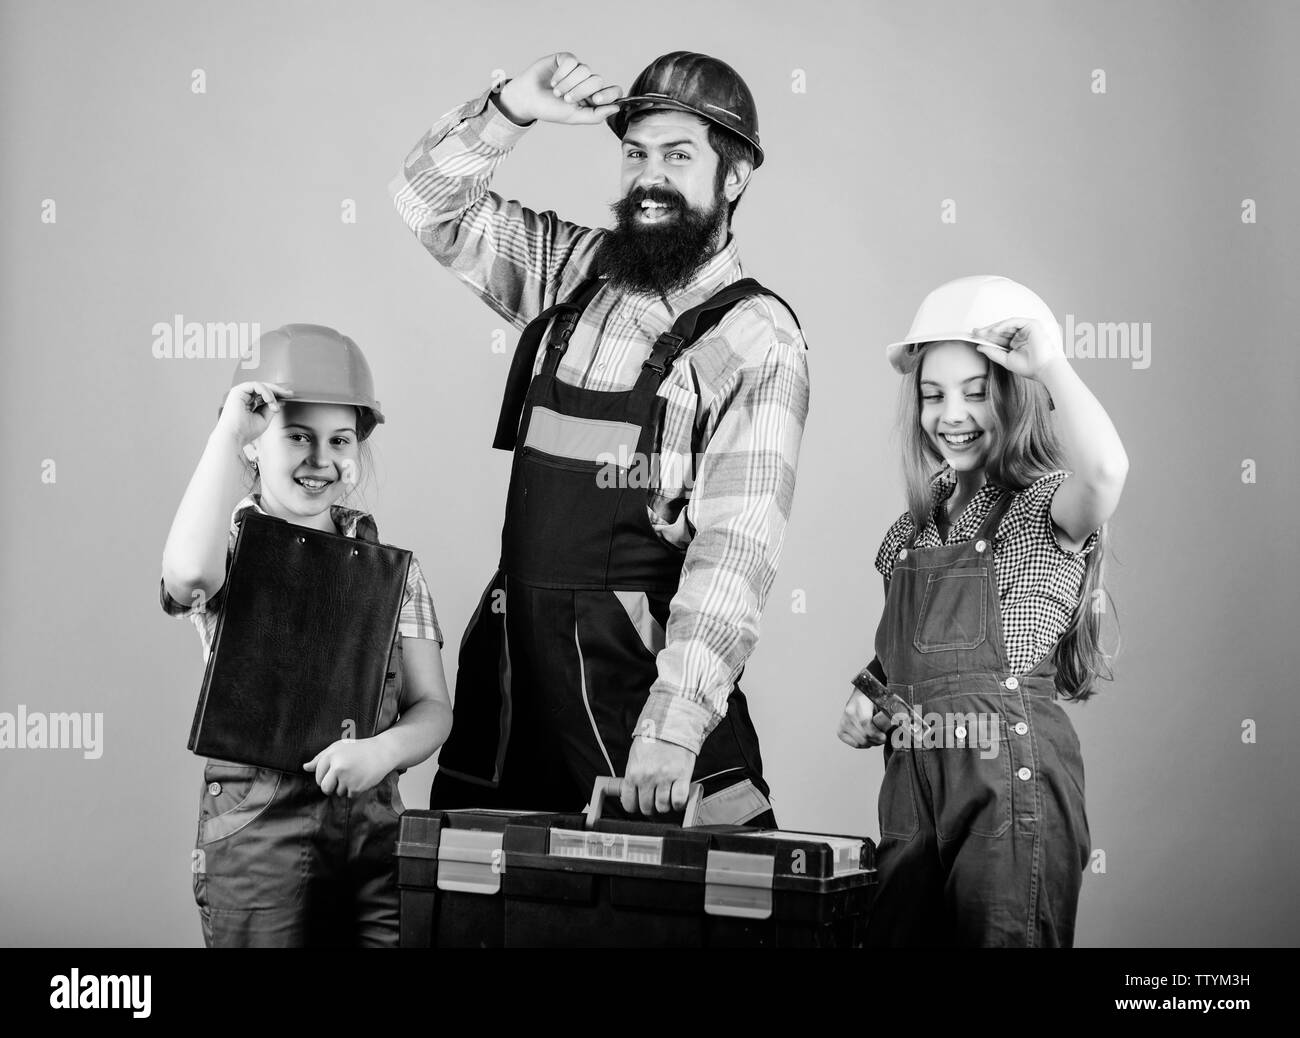 construction worker assistant. Builder or carpenter. Repairman in uniform. Engineer. Bearded man with little girls. Repair. Childrens creativity. Father and daughter in workshop. Confidence at safety. - Stock Image